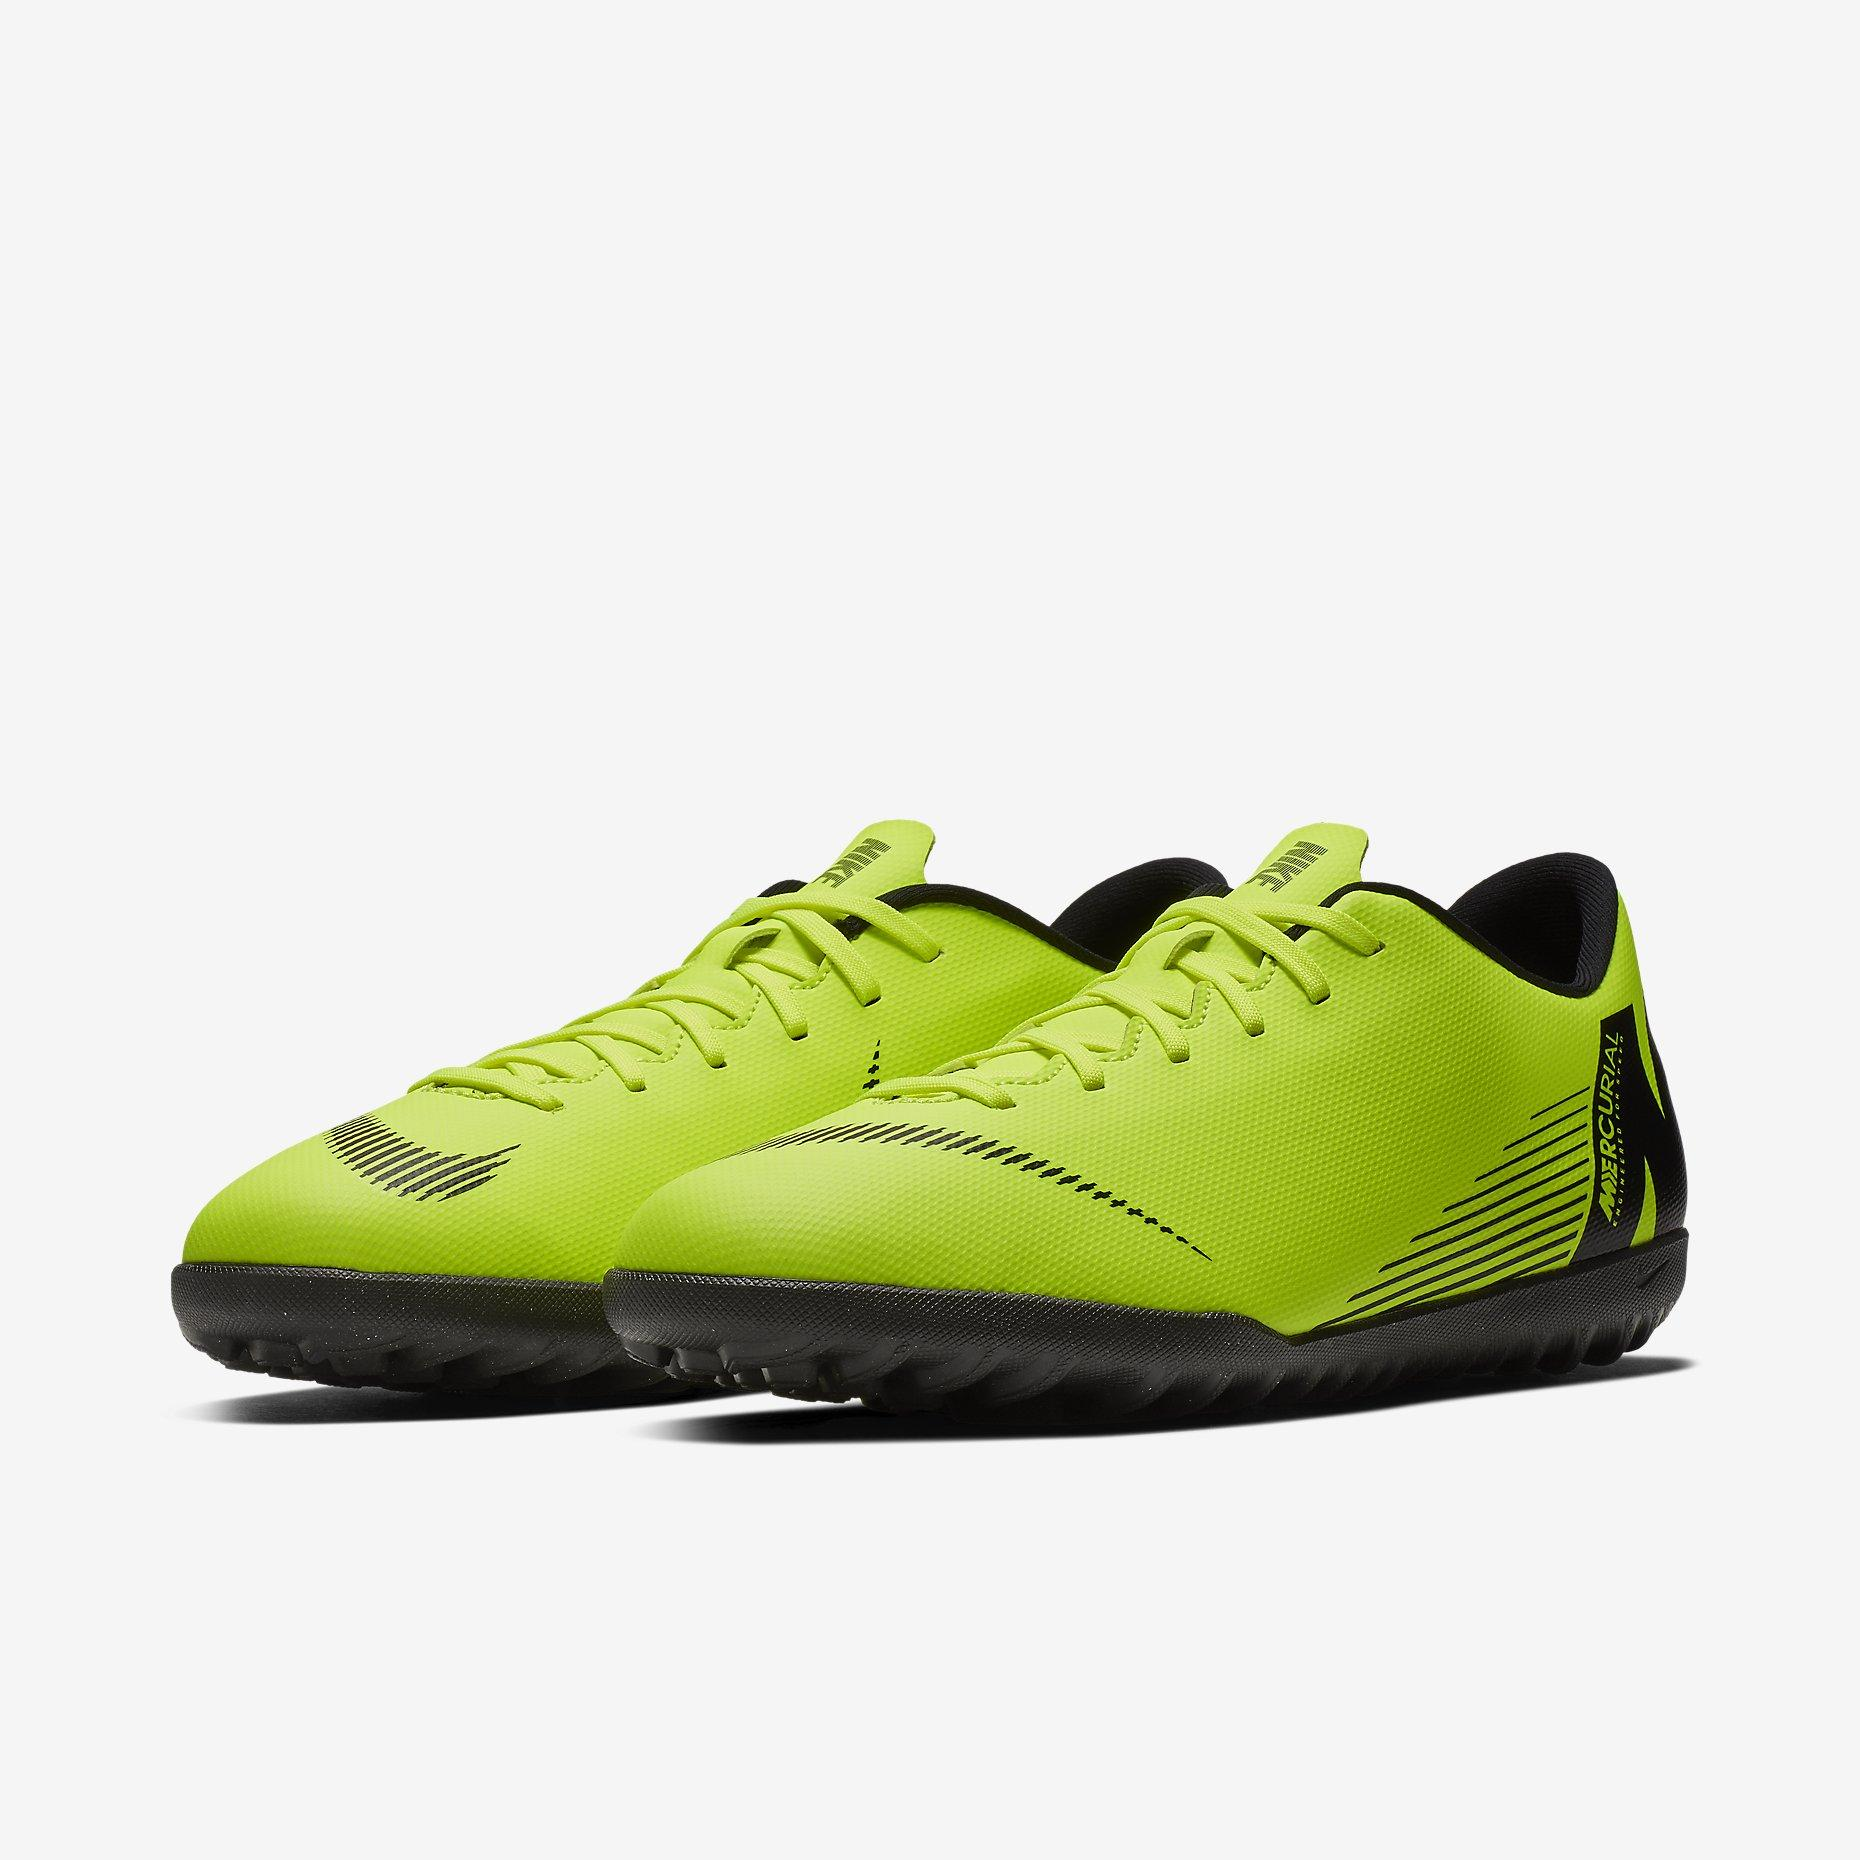 big sale ed61c 14df1 NIKE MERCURIALX VAPOR12 CLUB TURF SHOES